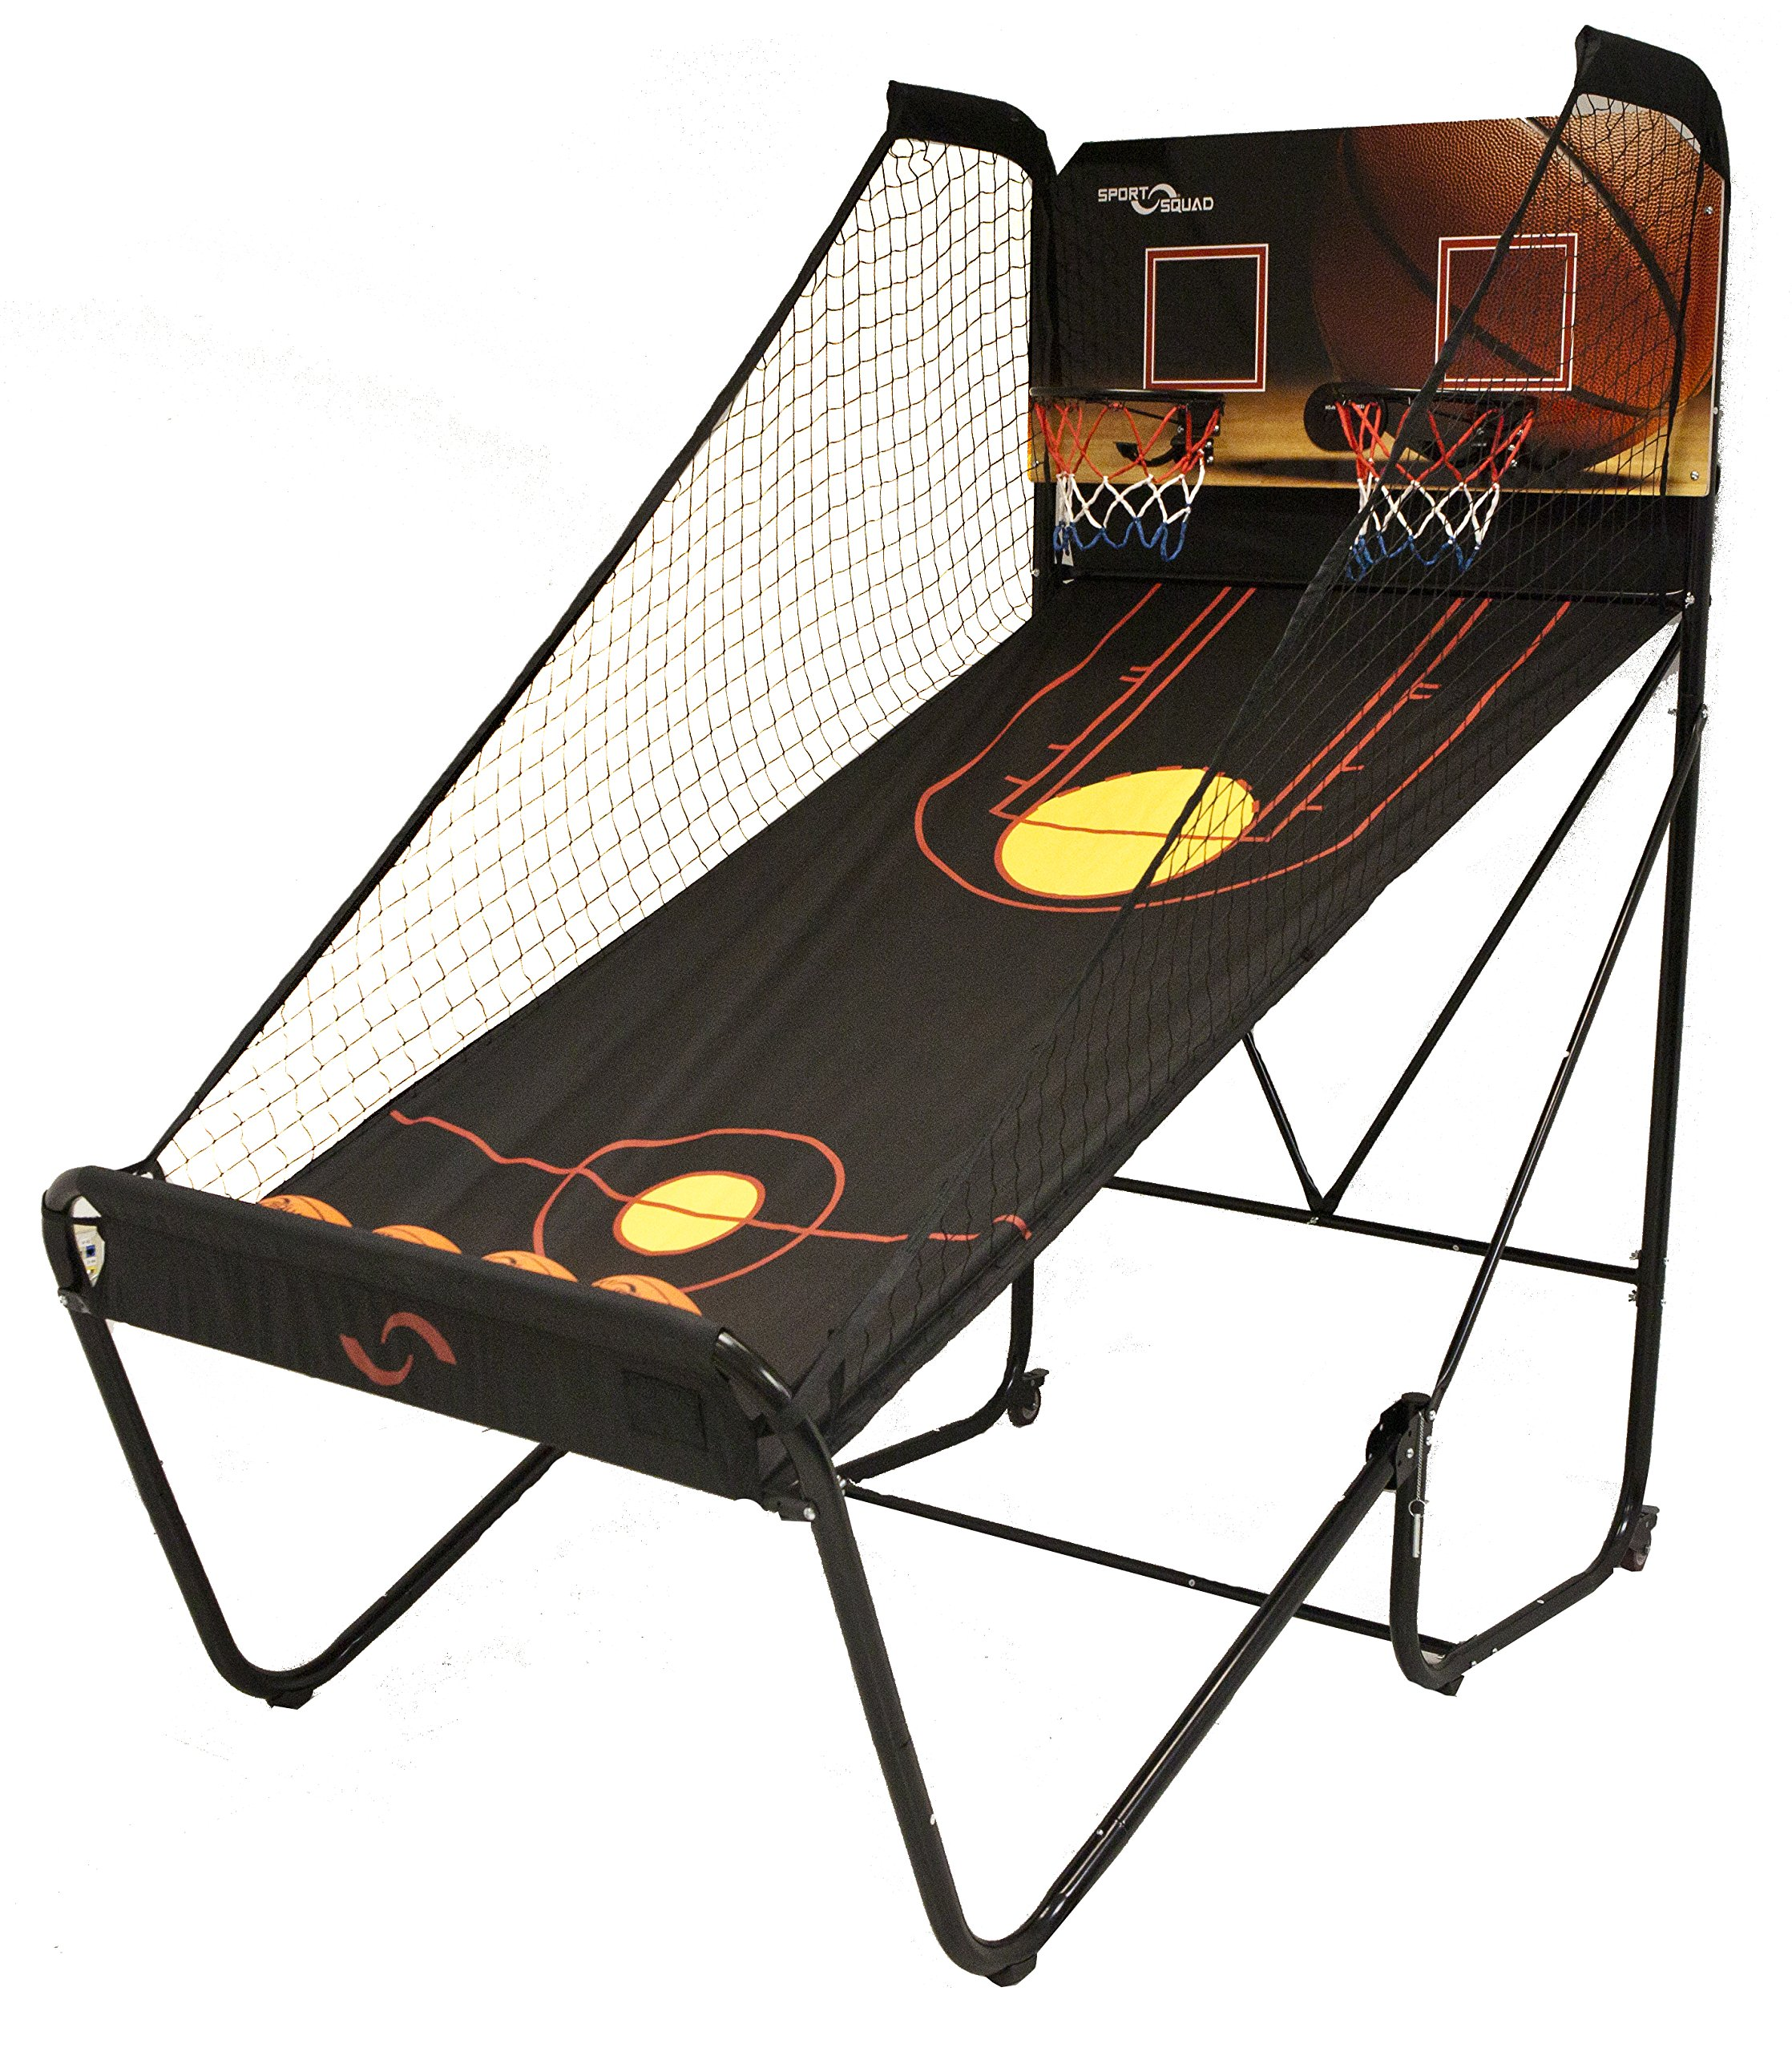 Sport Squad Jump Shot Pro - Easy Fold Indoor Electronic Basketball Arcade Game with Multi-Game Modes for Two Players - Basketball Game for Kids and Adults - Includes Four 7'' Basketballs and Air Pump by Sport Squad